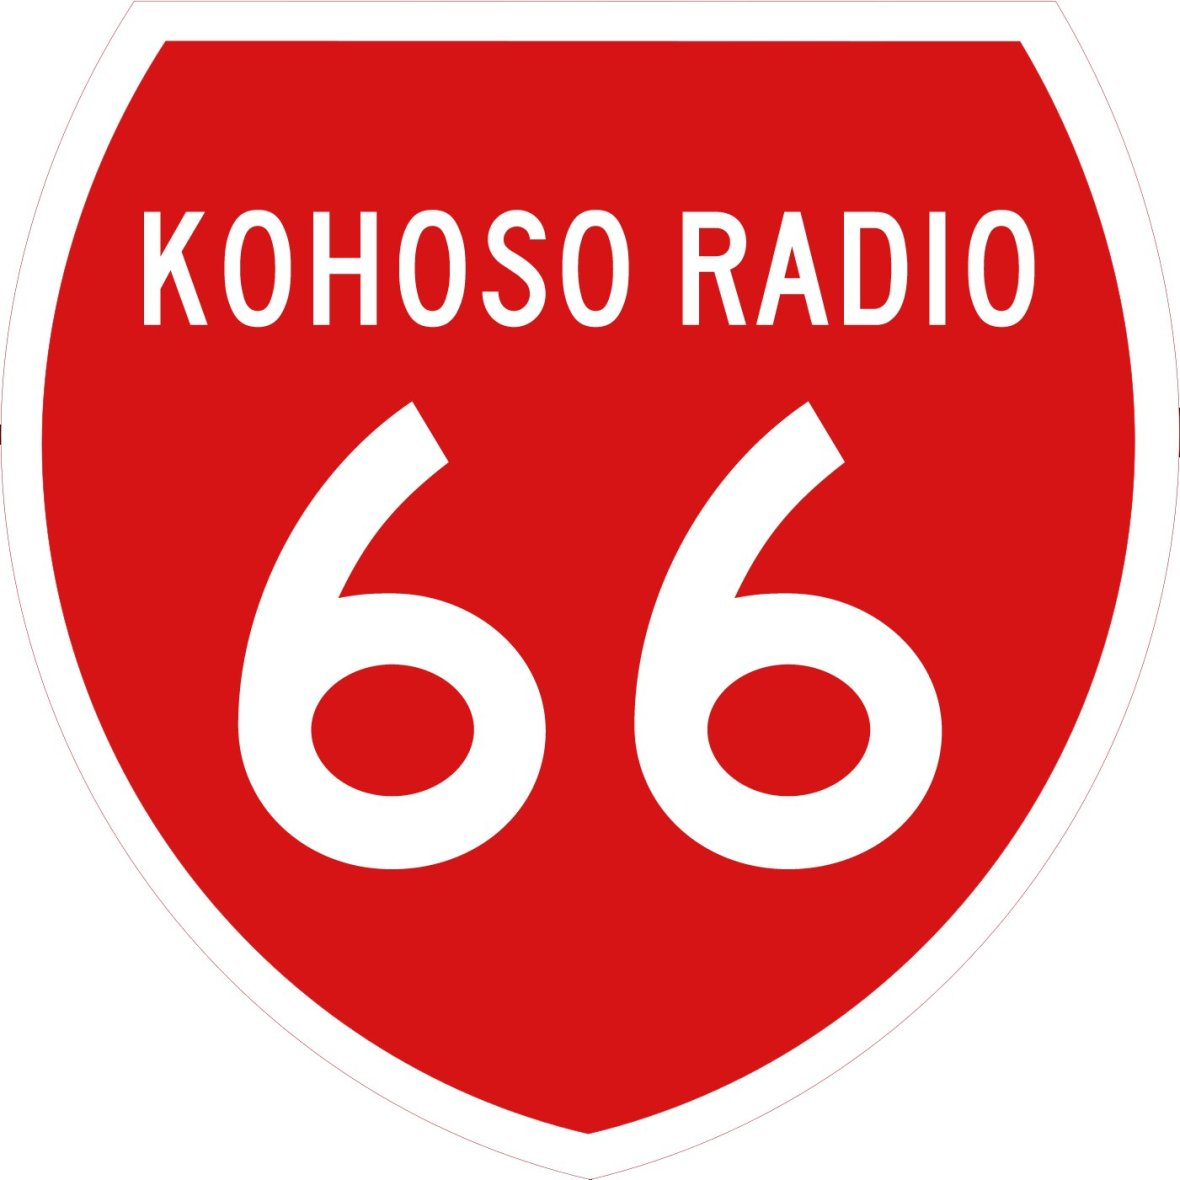 The New Zealand version of the KoHoSo Radio 66 shield